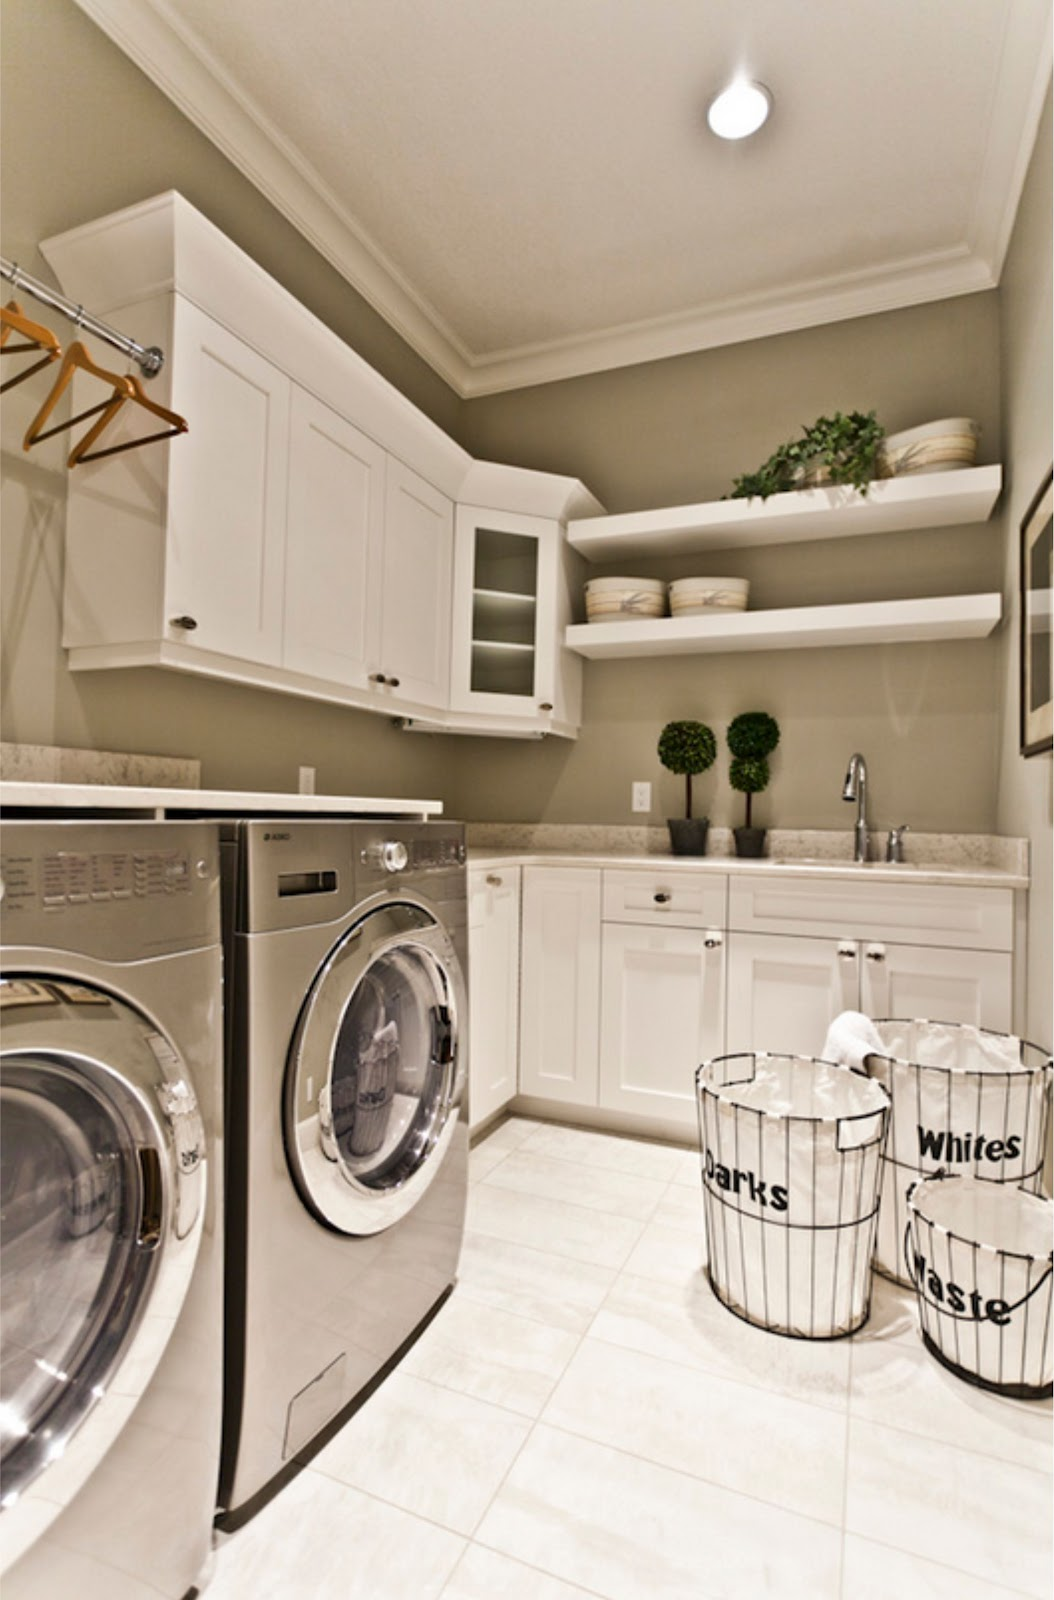 50 Best Laundry Room Design Ideas for 2016 on Laundry Decorating Ideas  id=20826